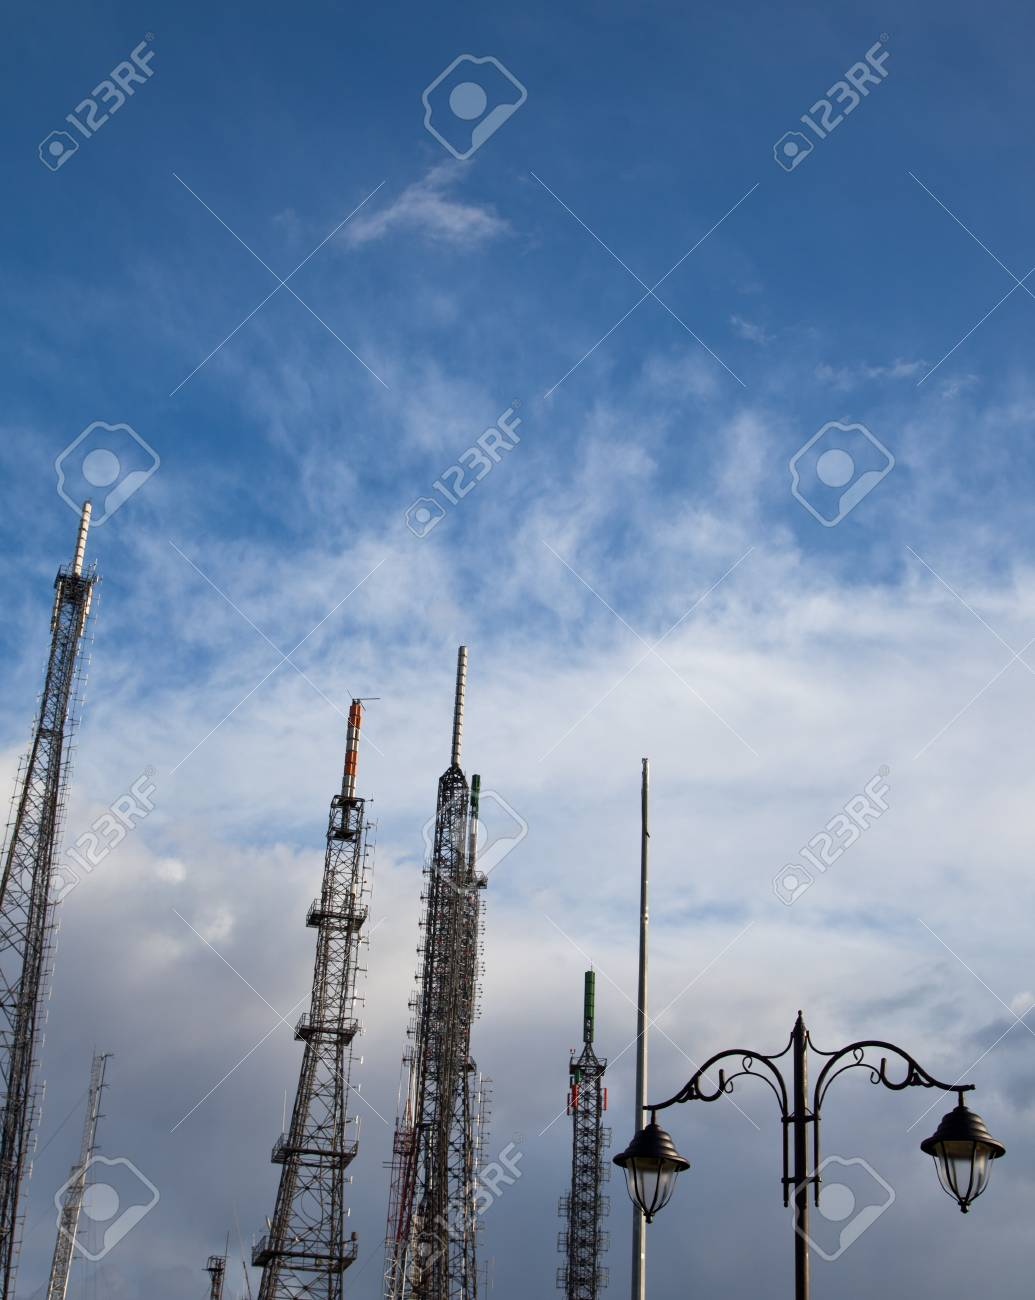 Communications Tower With Clouds 2 Stock Photo - 13214856